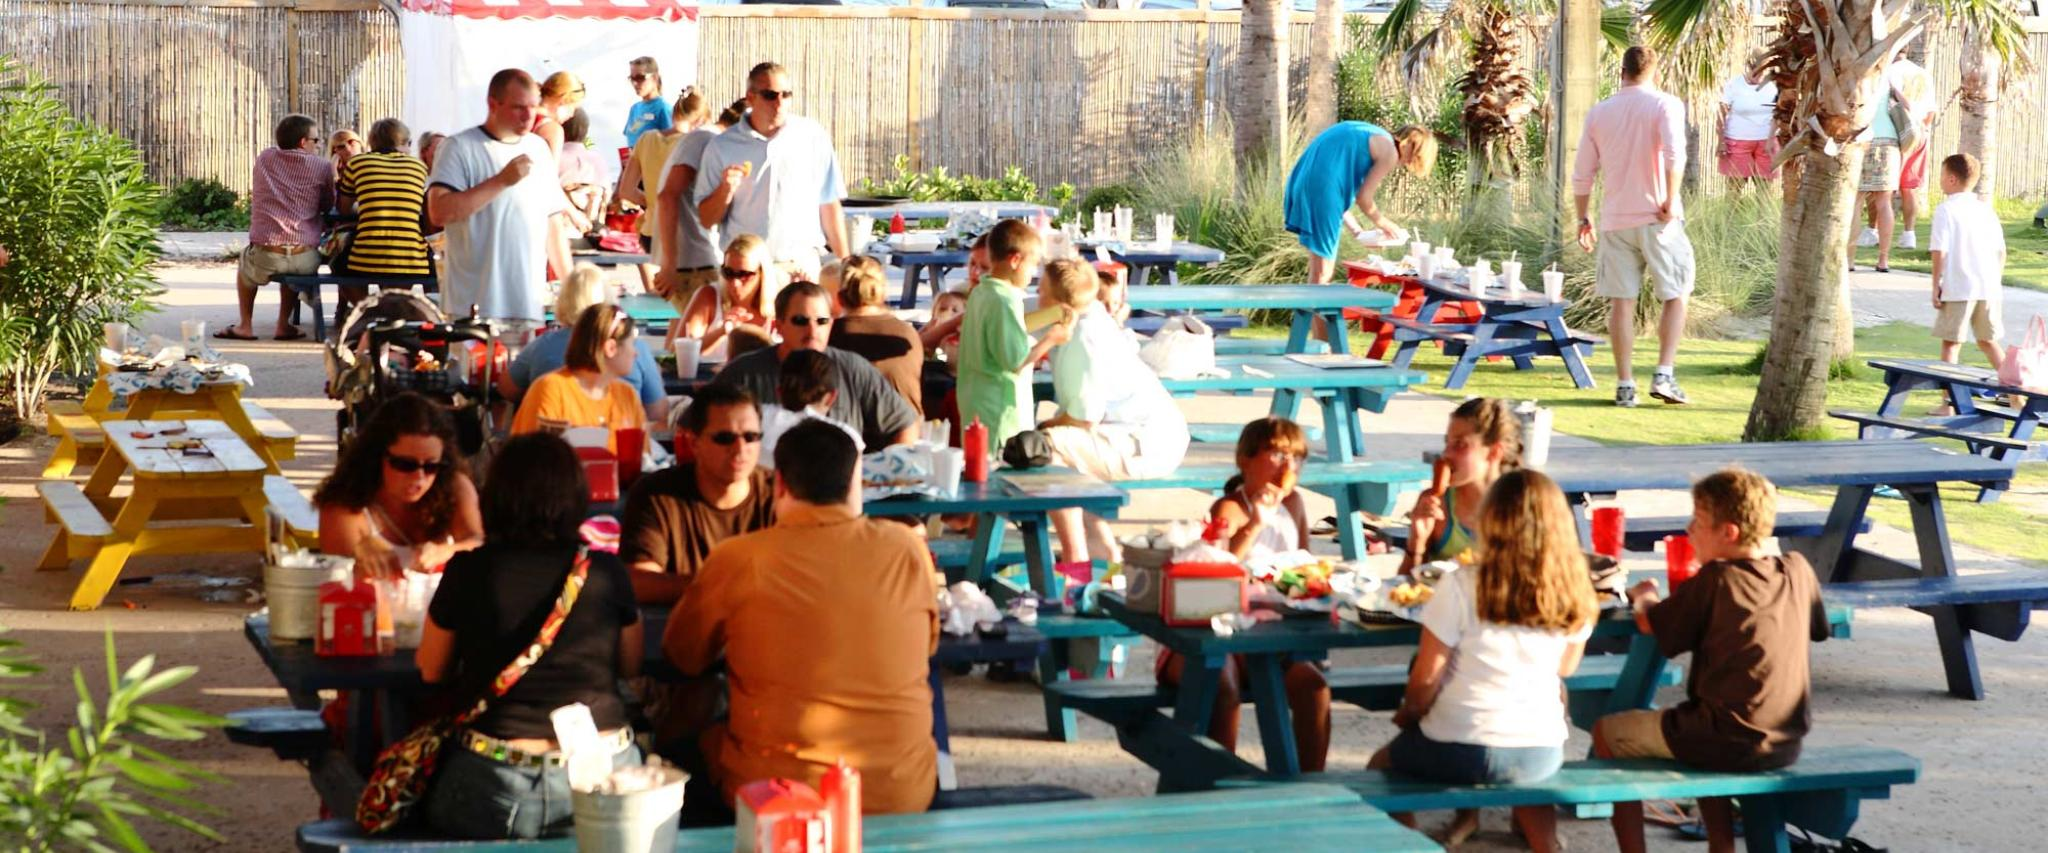 Fan Favorites Family - The Hangout Gulf Shores